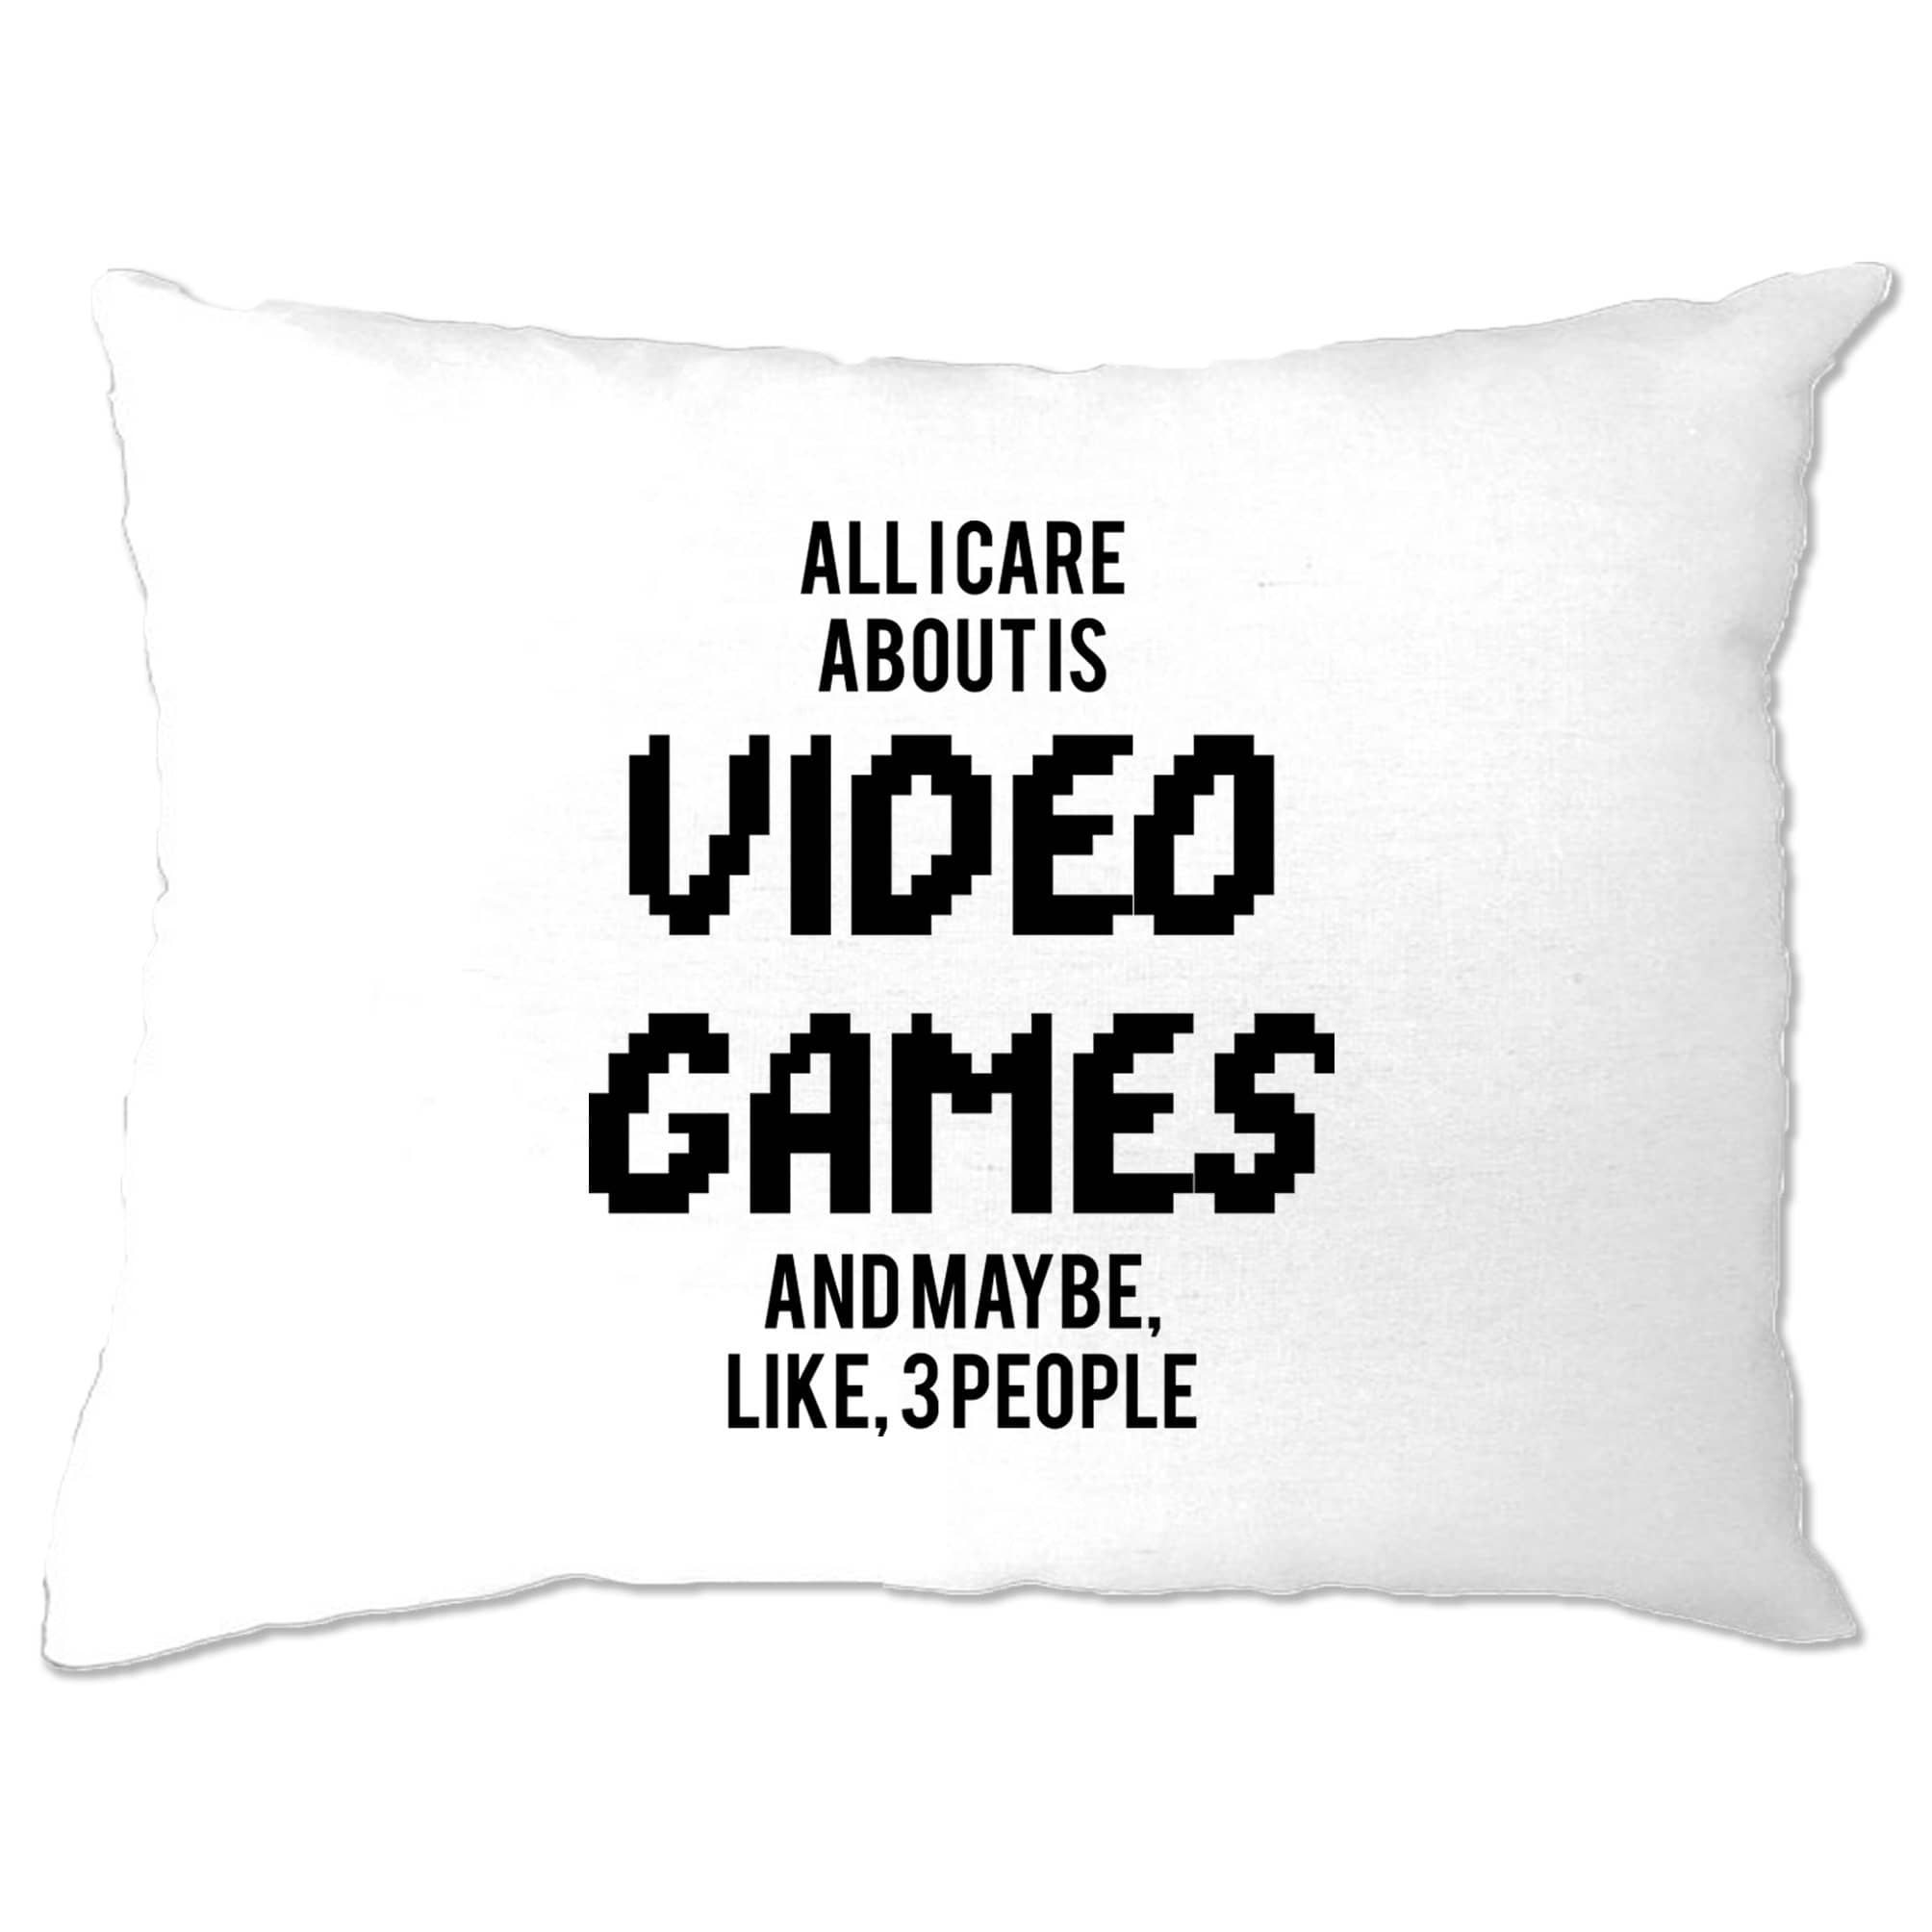 Joke Pillow Case All I Care About Is Games And 3 People